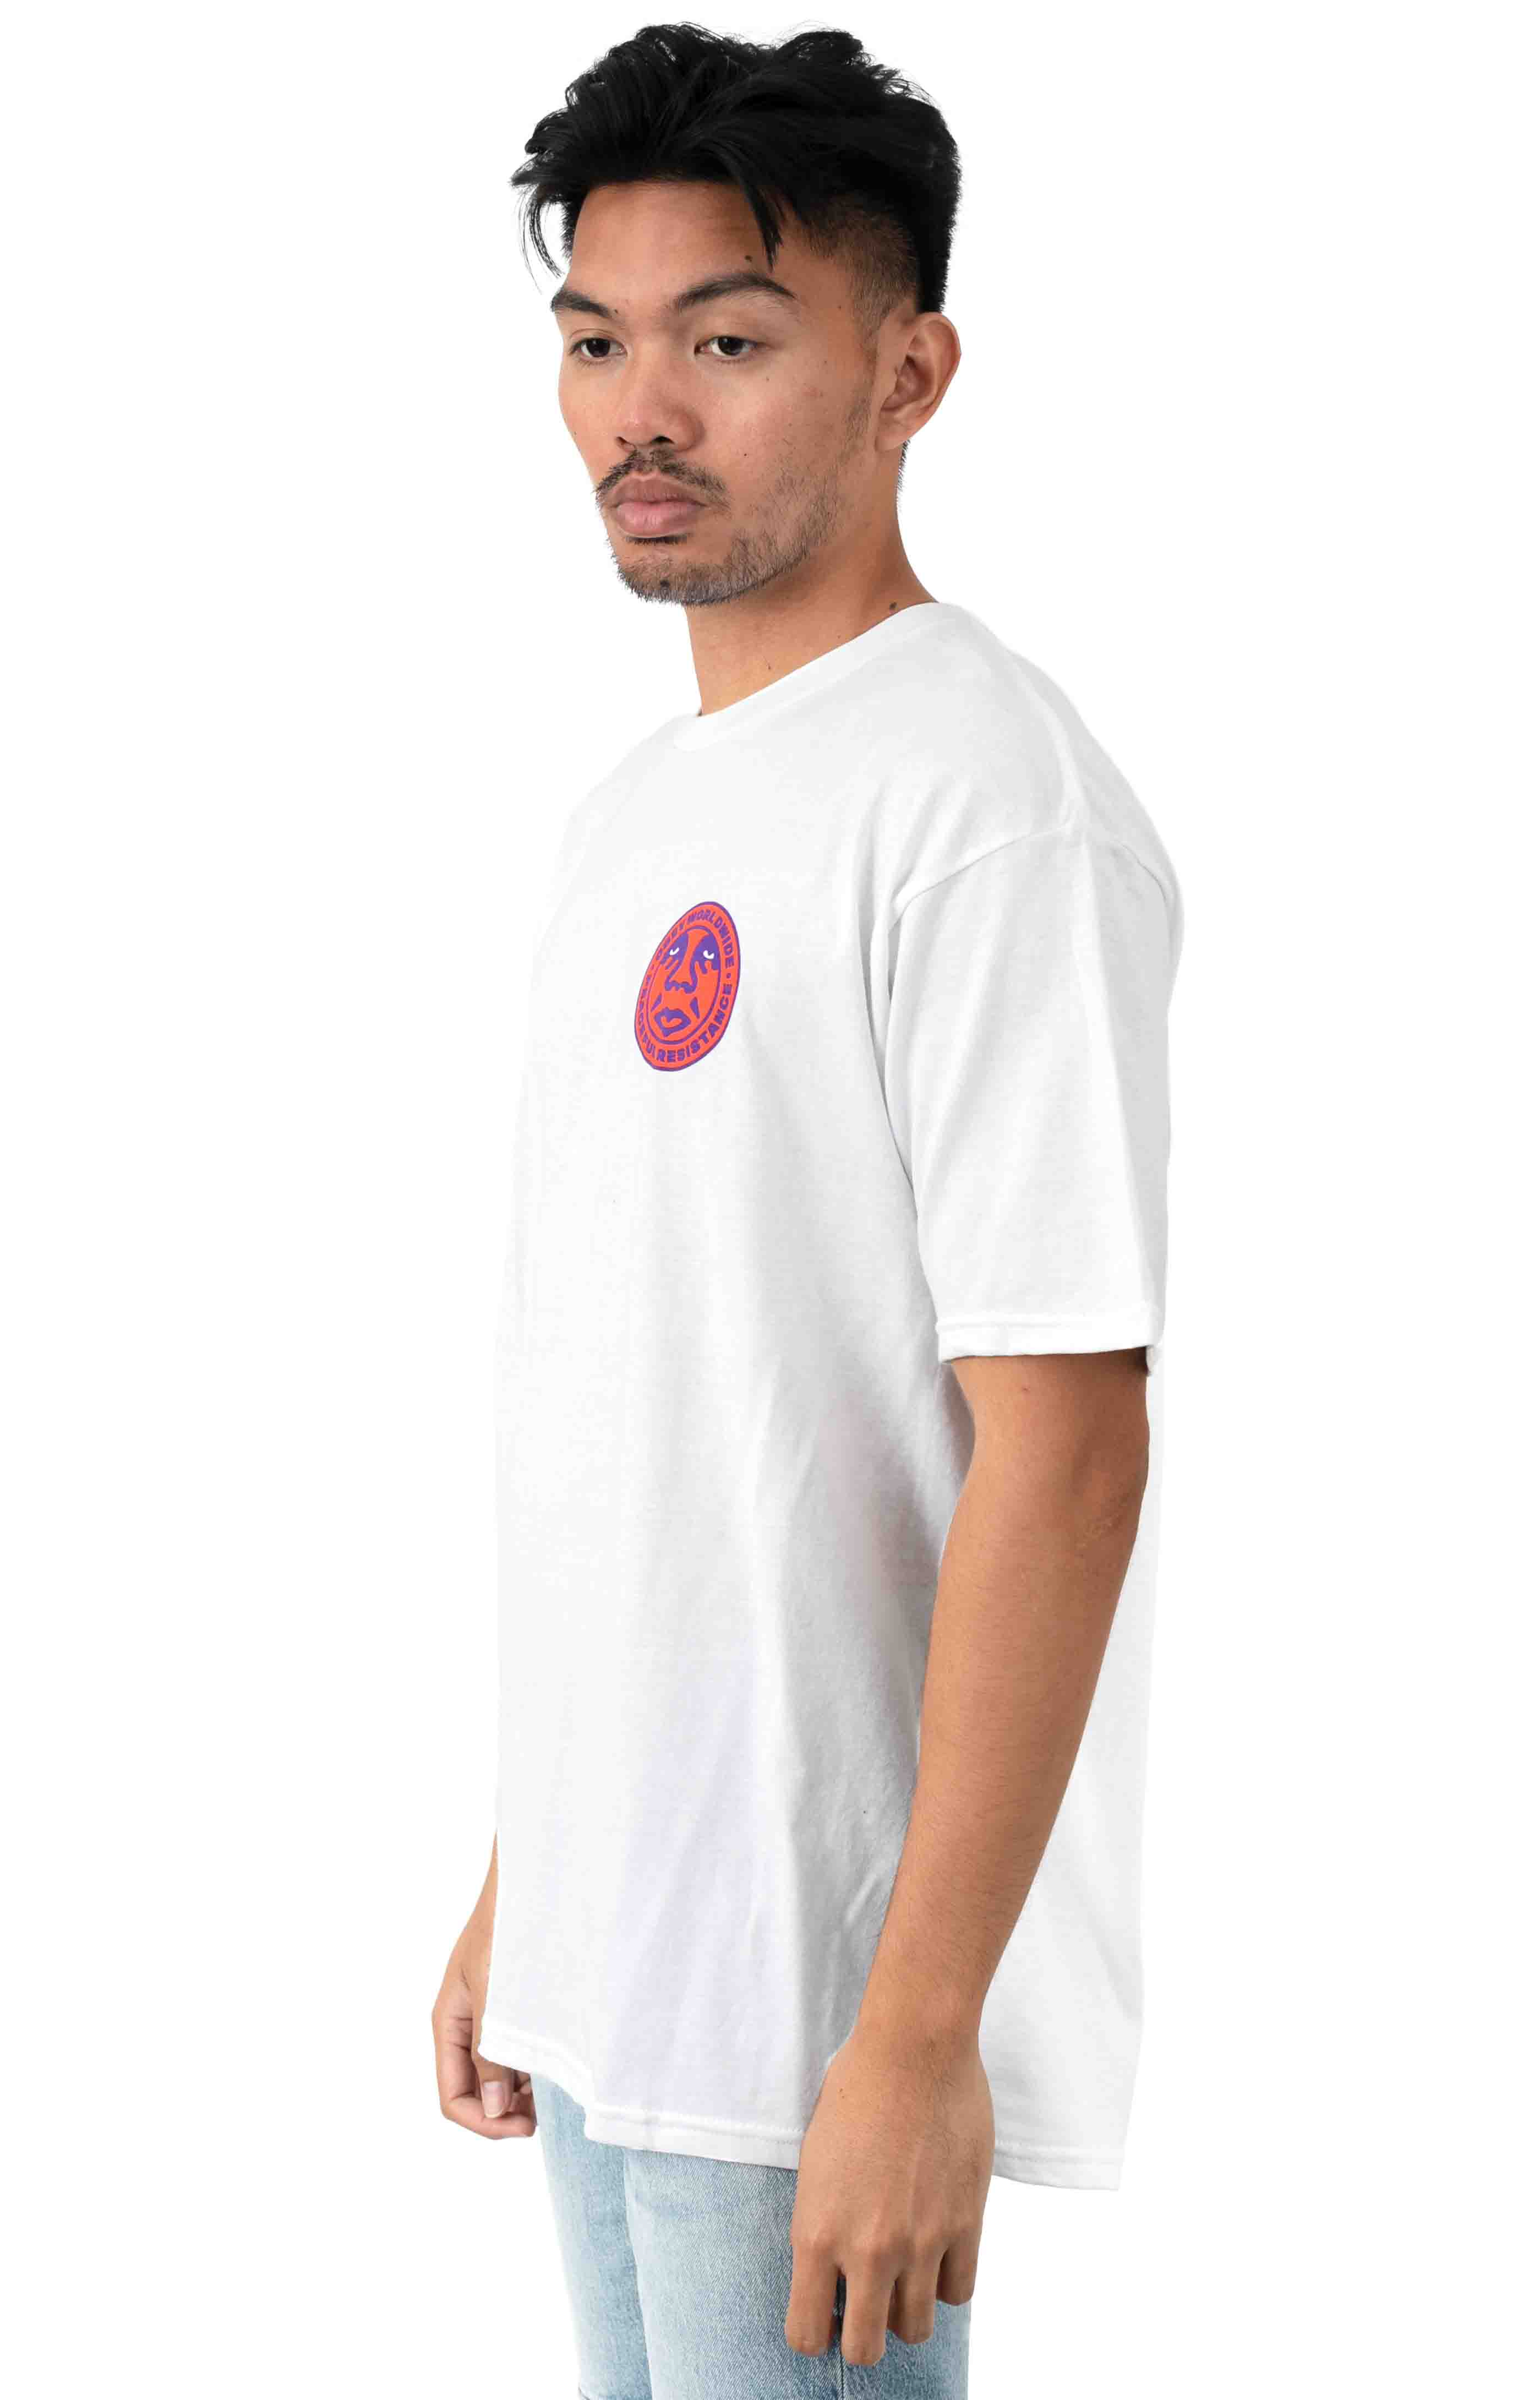 Peaceful Resistance 2 T-Shirt - White  3